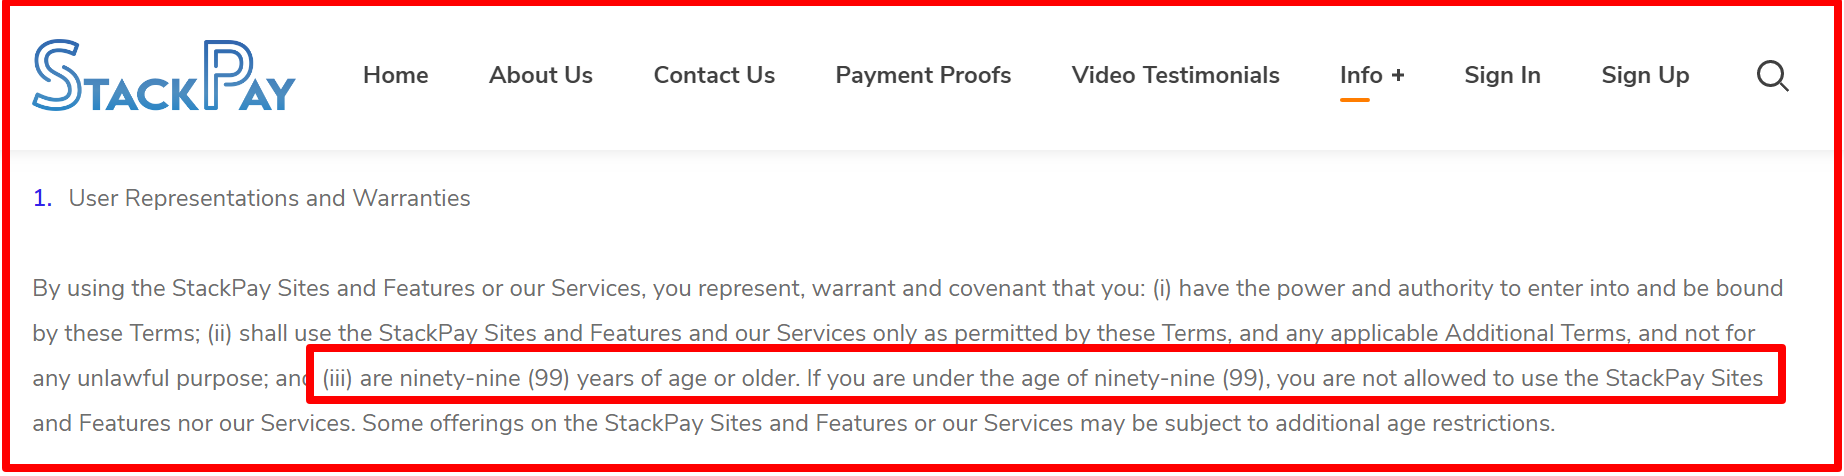 terms and conditions of stackpay